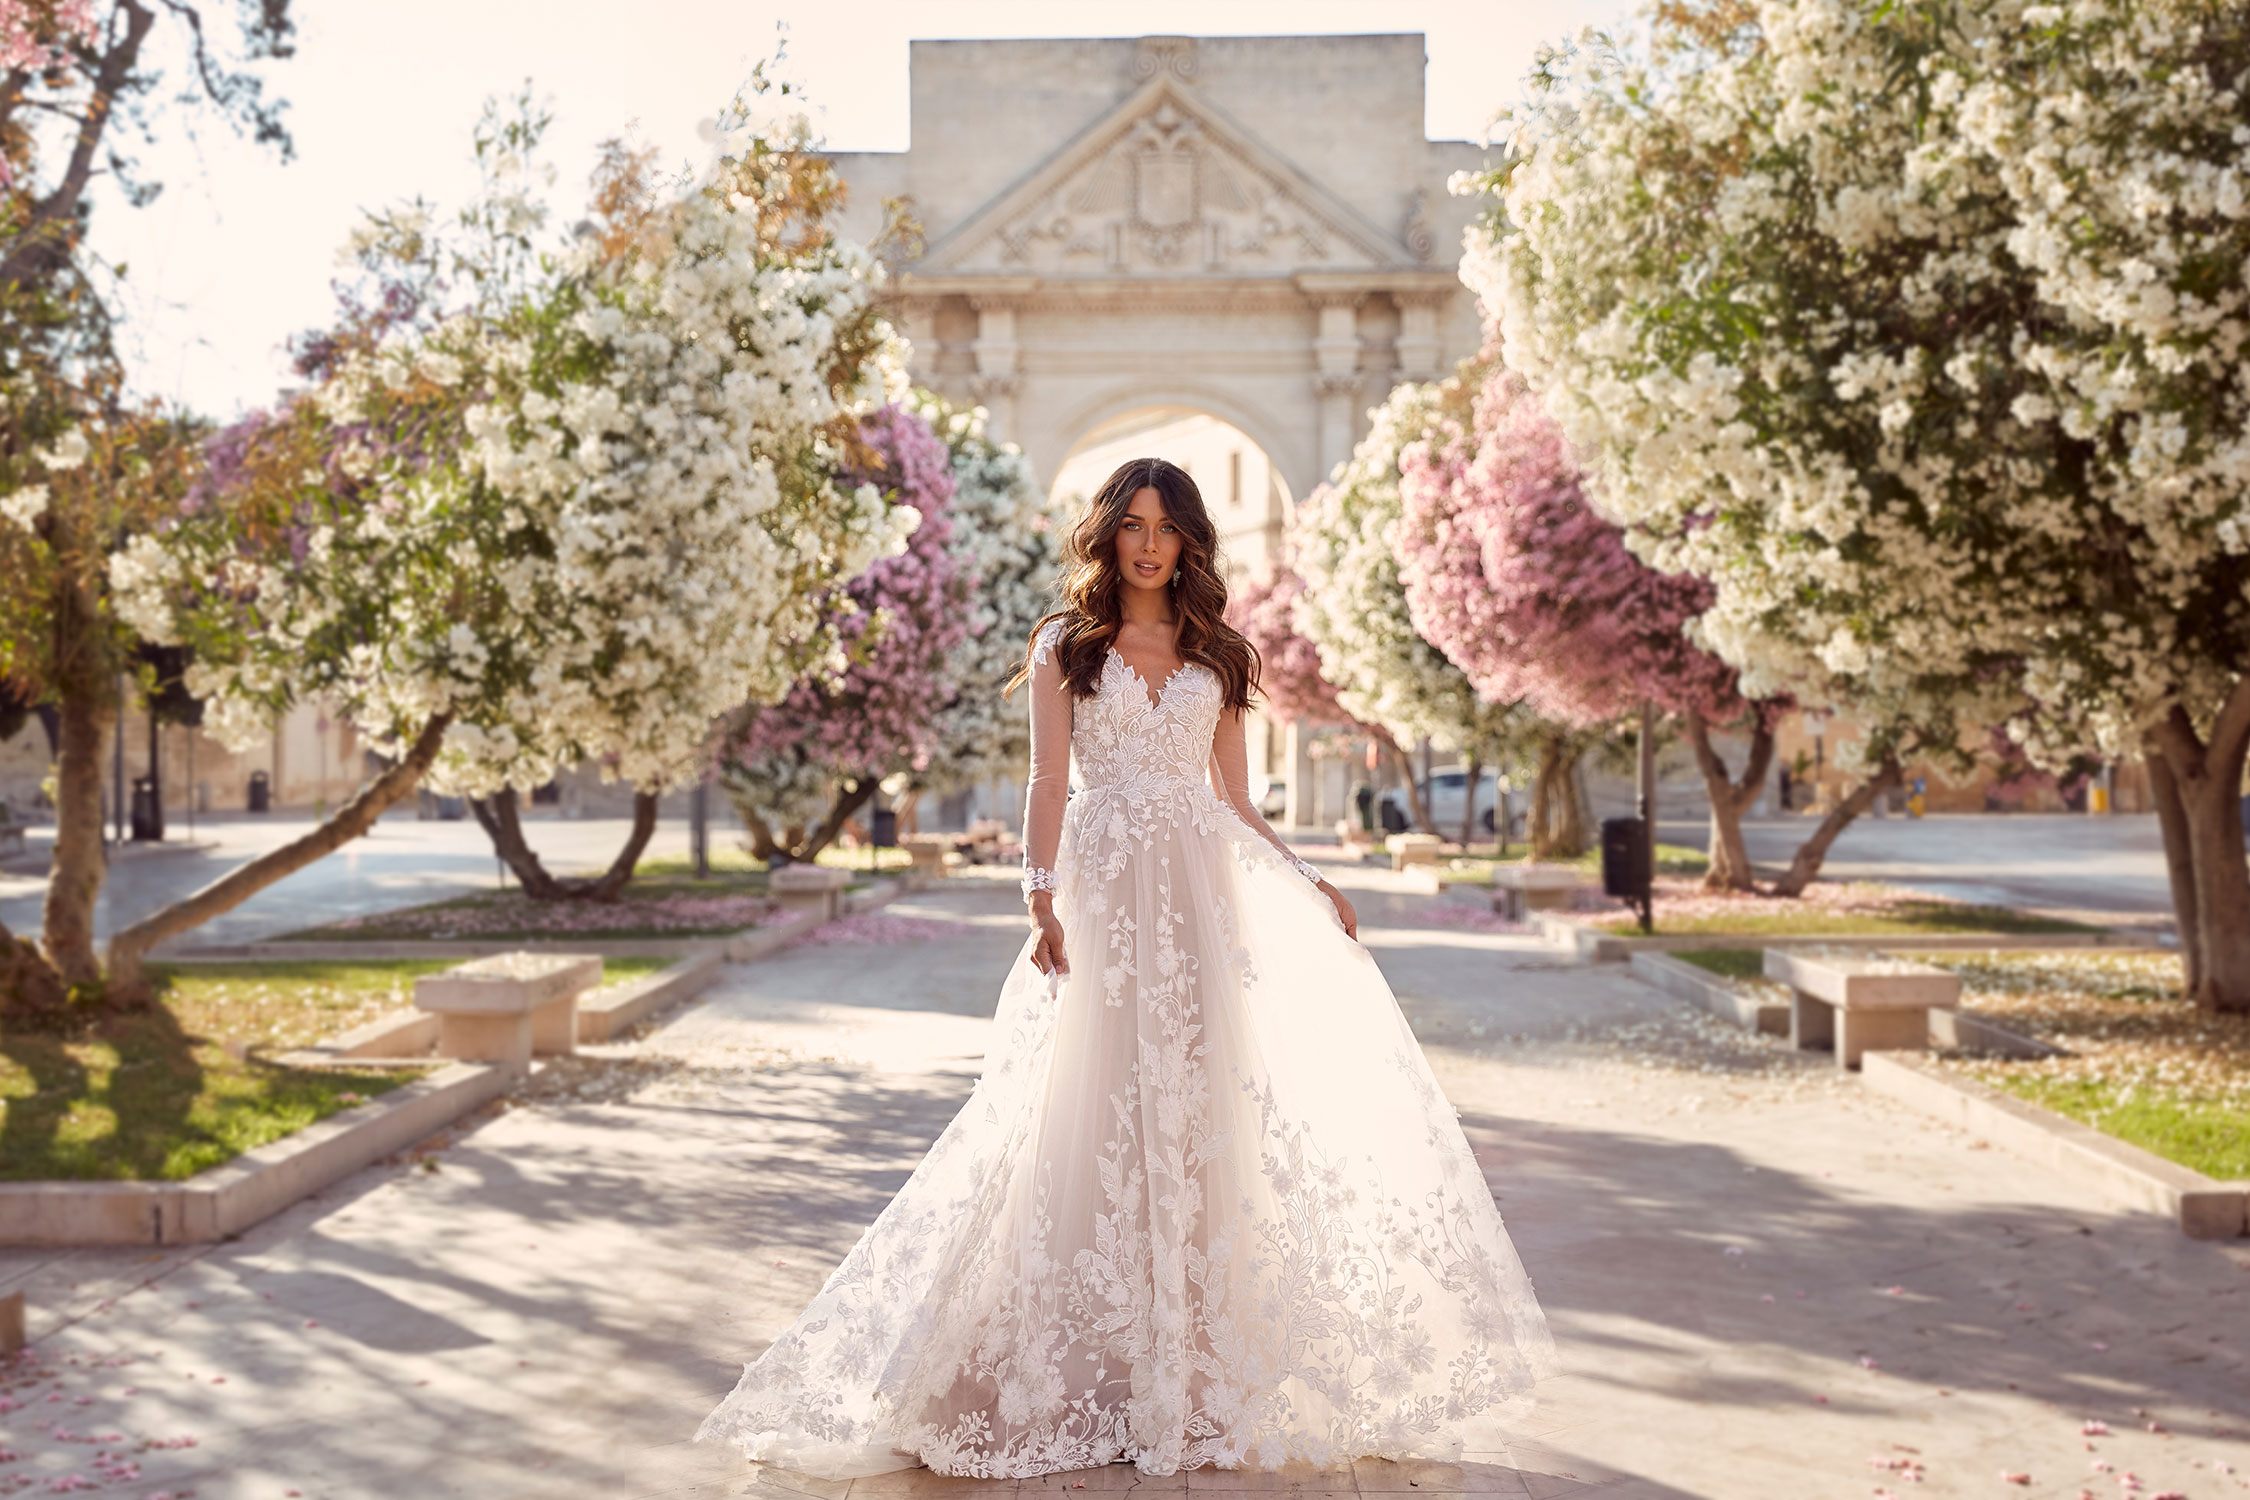 Meadow Ml10994 Full Length Floral Lace Keyhole Back With V Neck And Sleeves Wedding Dress Madi Lane Bridal8